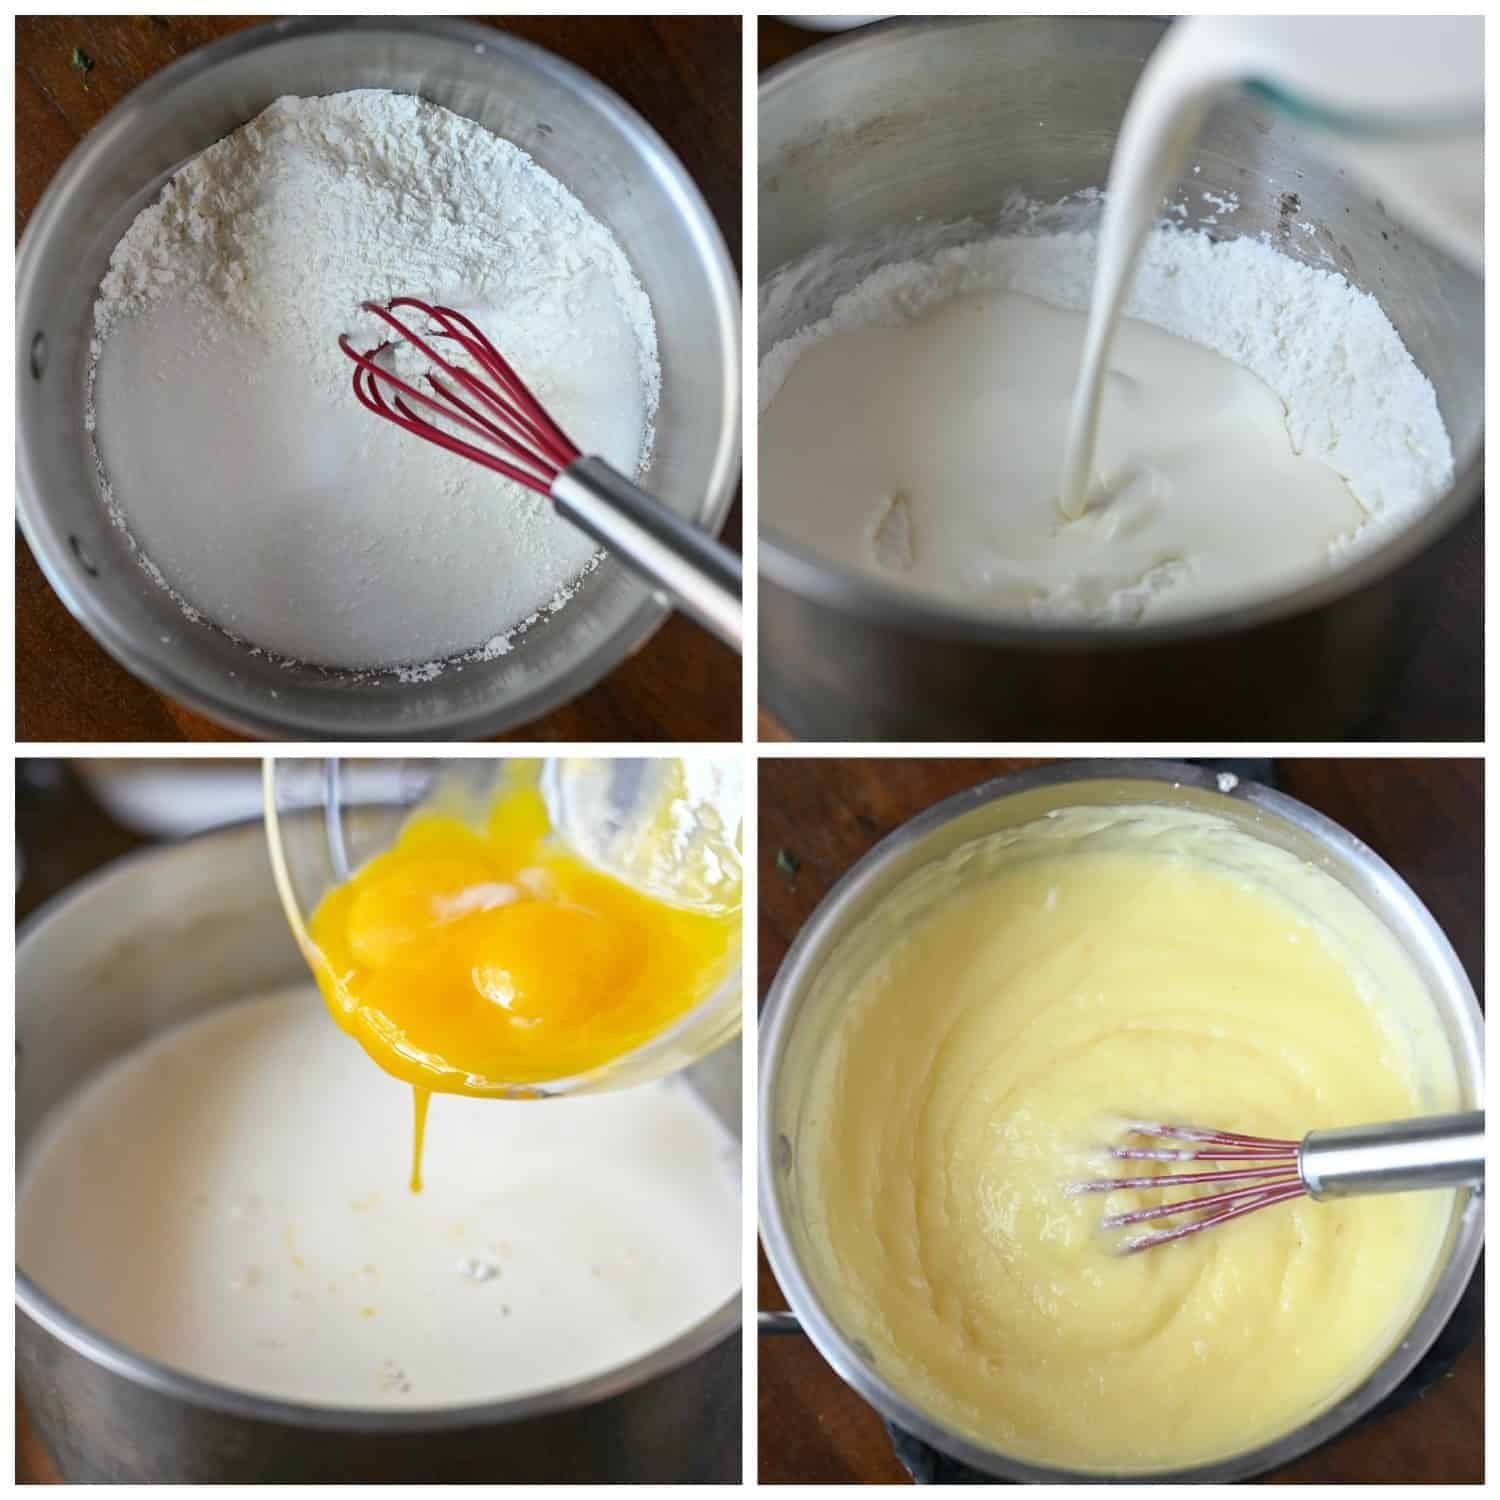 Four process shots. First one, dry ingredients into a saucepan and a red whisk. Second one, half n half being poured into saucepan. Third one, egg yolks being poured into saucepan. Fourth one, all ingredients being whisked together until thickened.